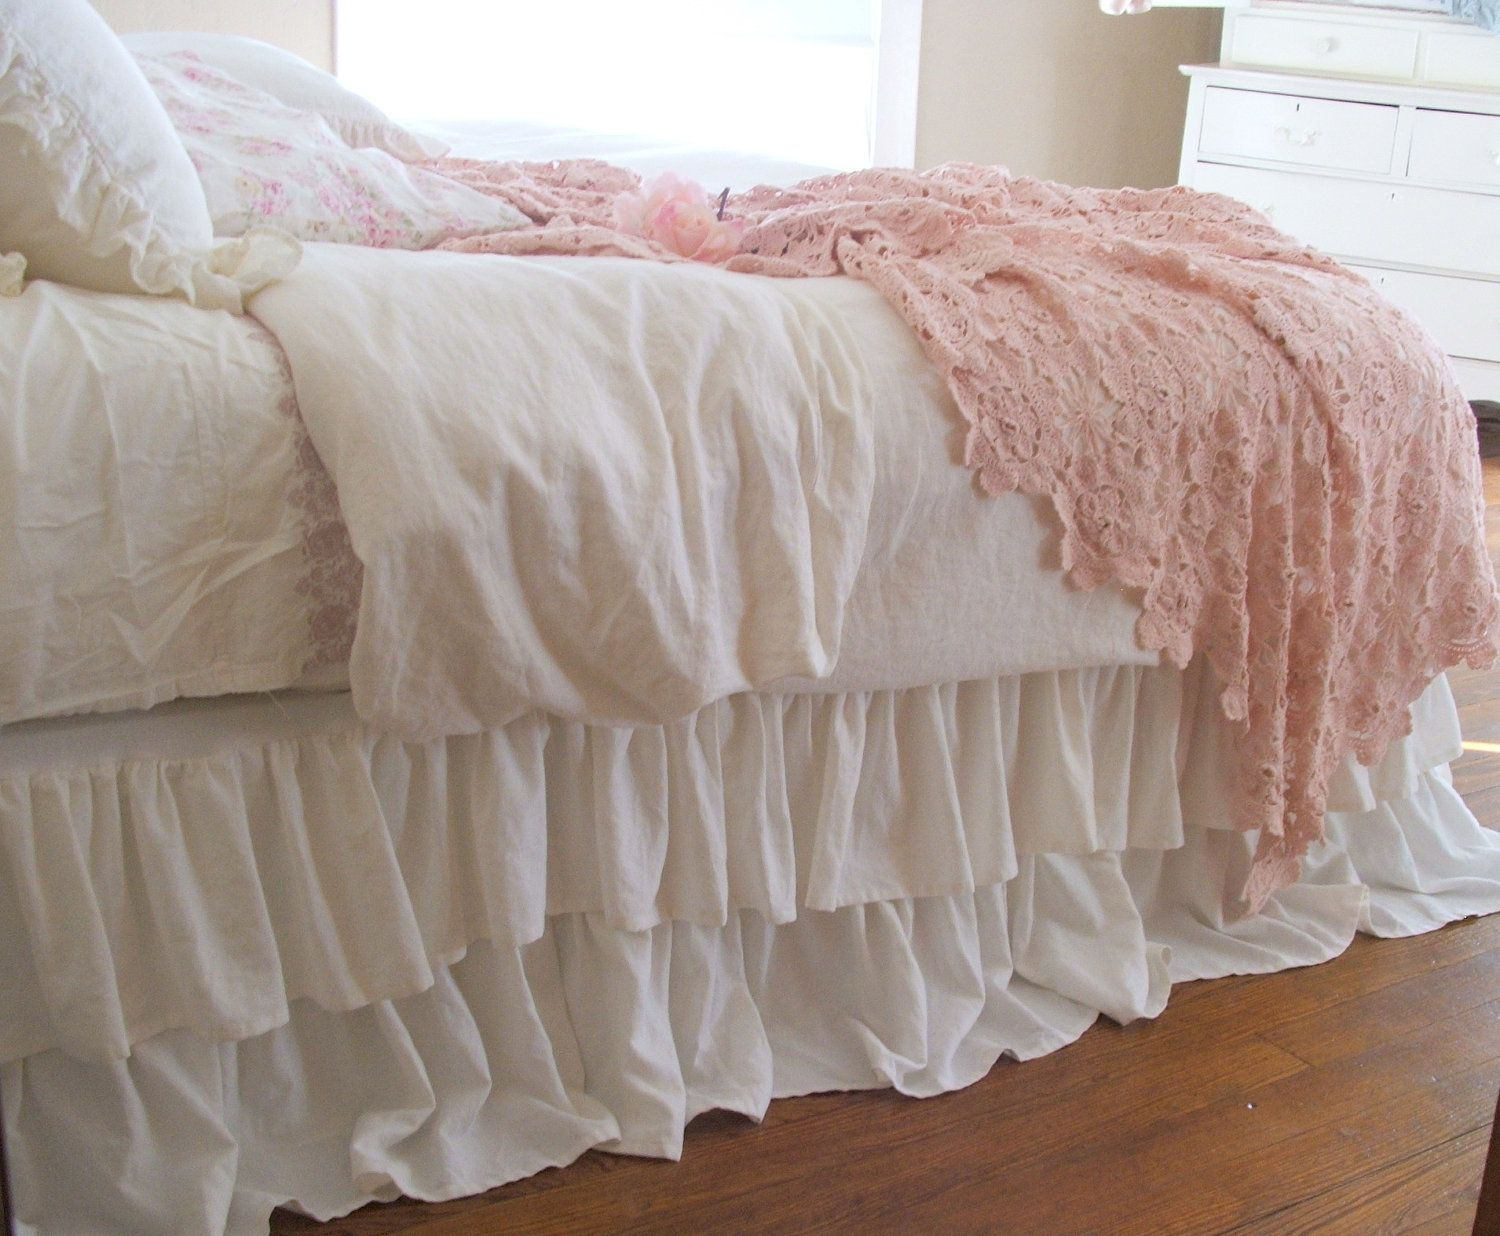 superior Toile Bed Skirts Part - 14: Shabby Chic Bedding Romantic Tiered Ruffle Dust Ruffle Bed Skirt Twin Size  Off White Linen - from Ticking and Toile Linen Shoppe on Etsy